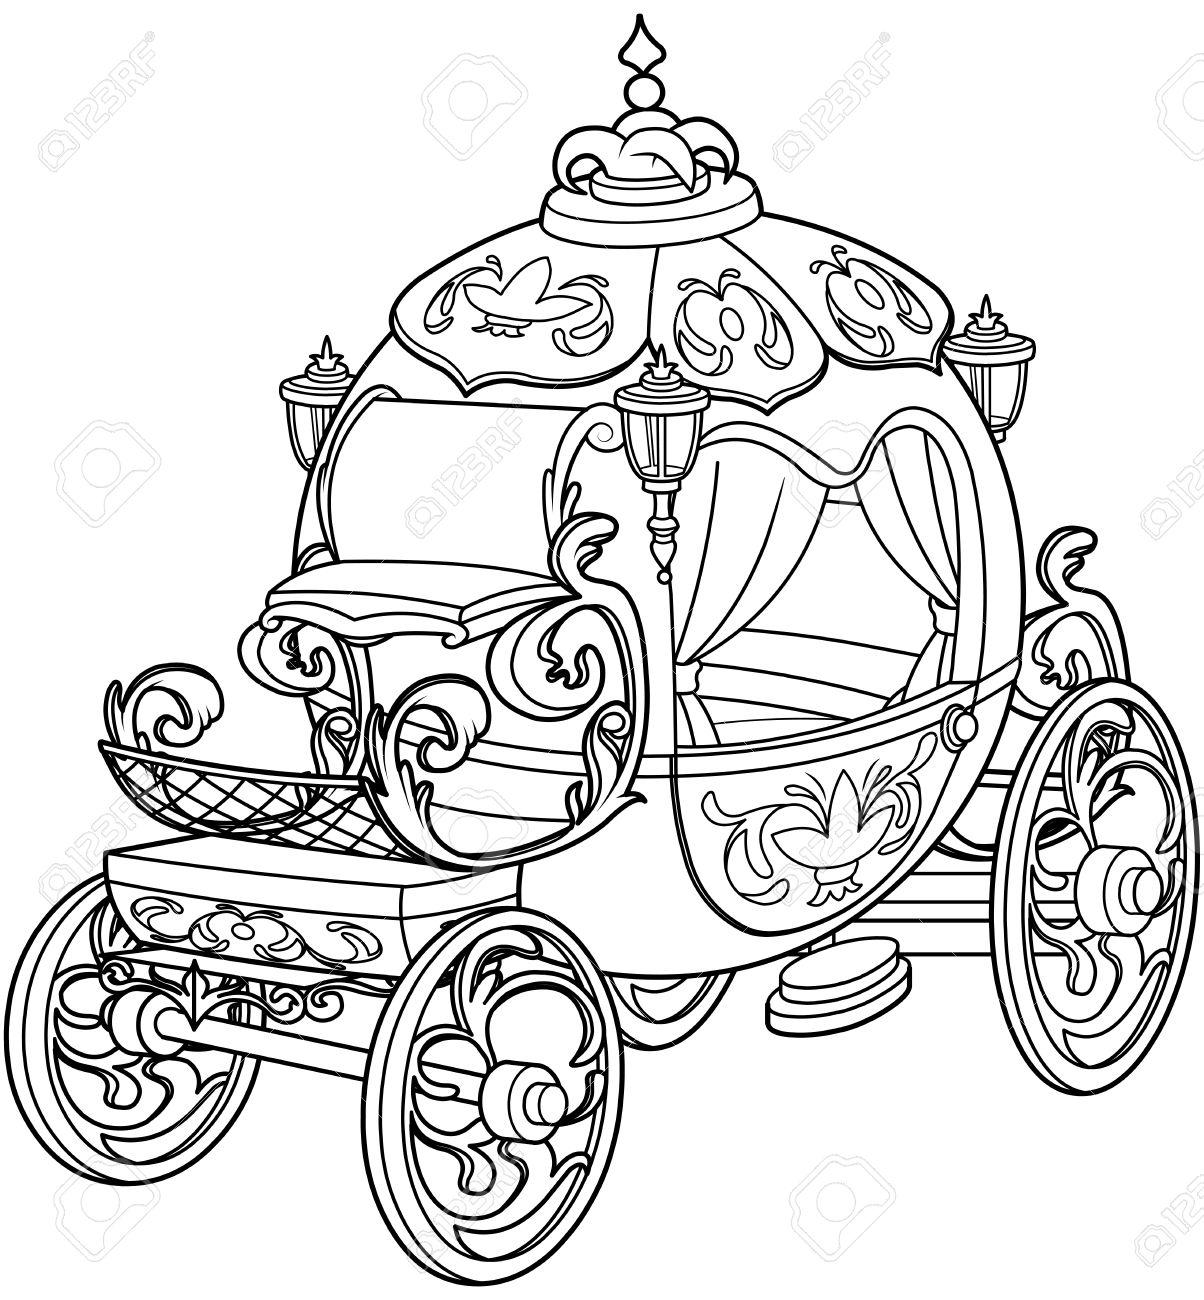 hight resolution of cinderella fairy tale pumpkin carriage coloring page stock vector 69153630